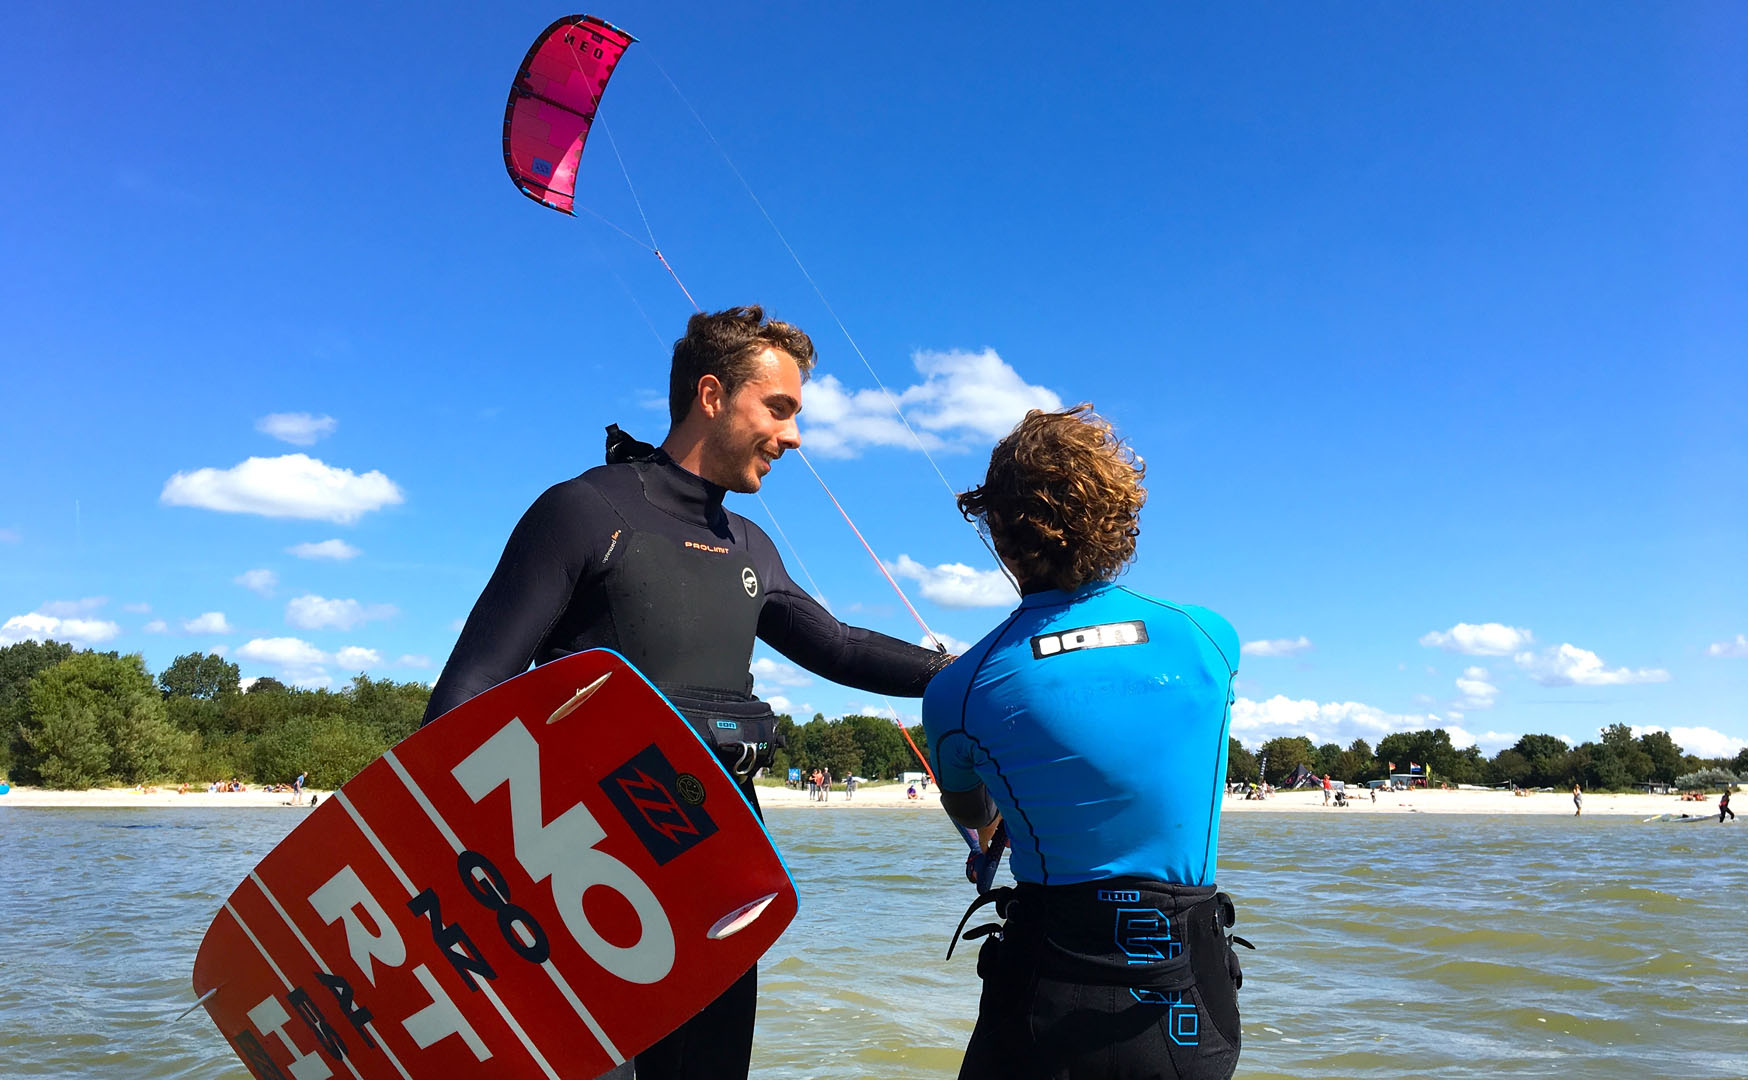 Kitesurf les bij Workum ITSOAL website